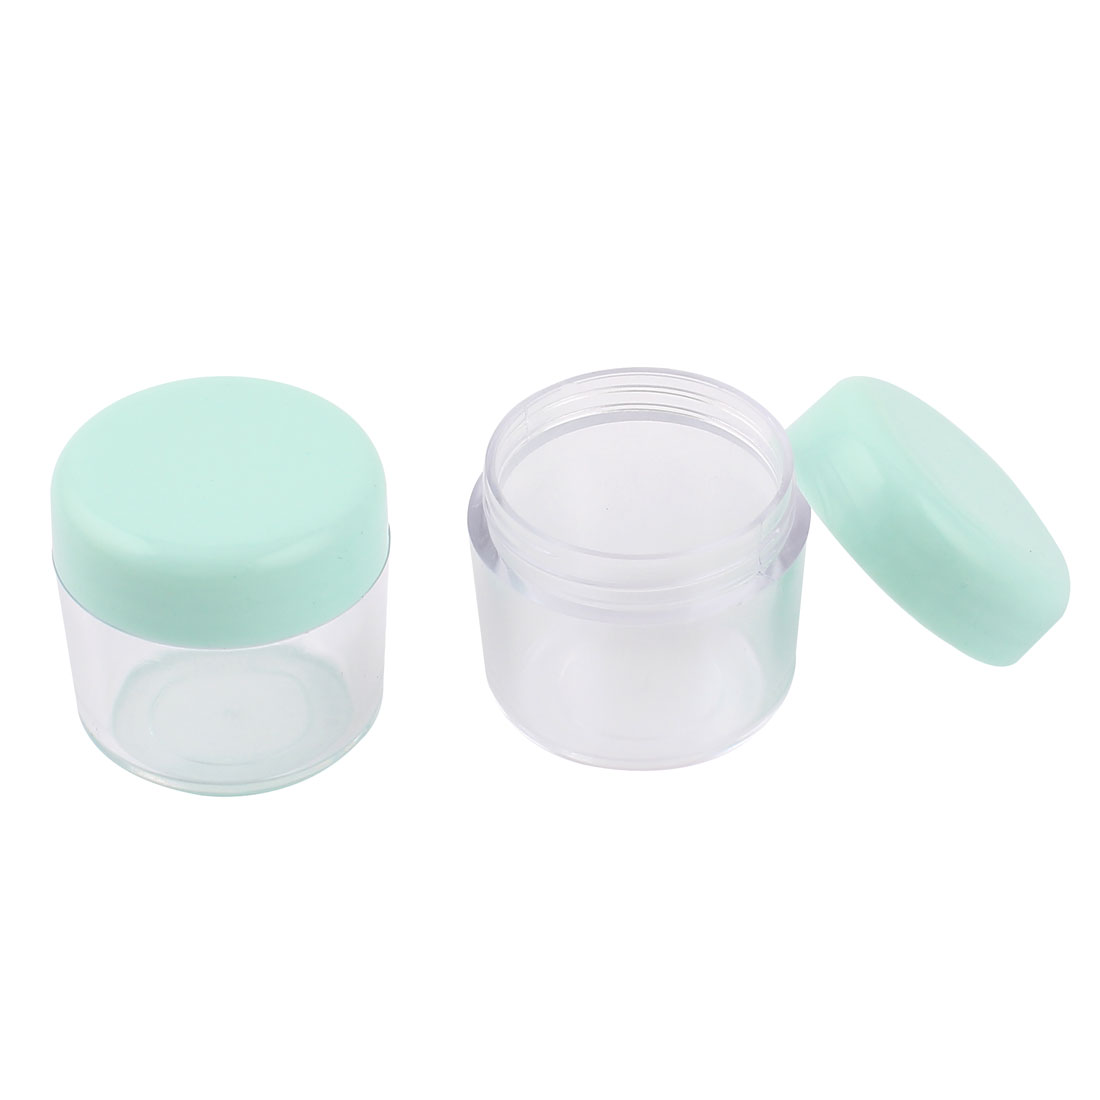 2Pcs Green Cover Clear Plastic Round Empty Lotion Liquid Cream Holder Cosmetic Jar w Spoon